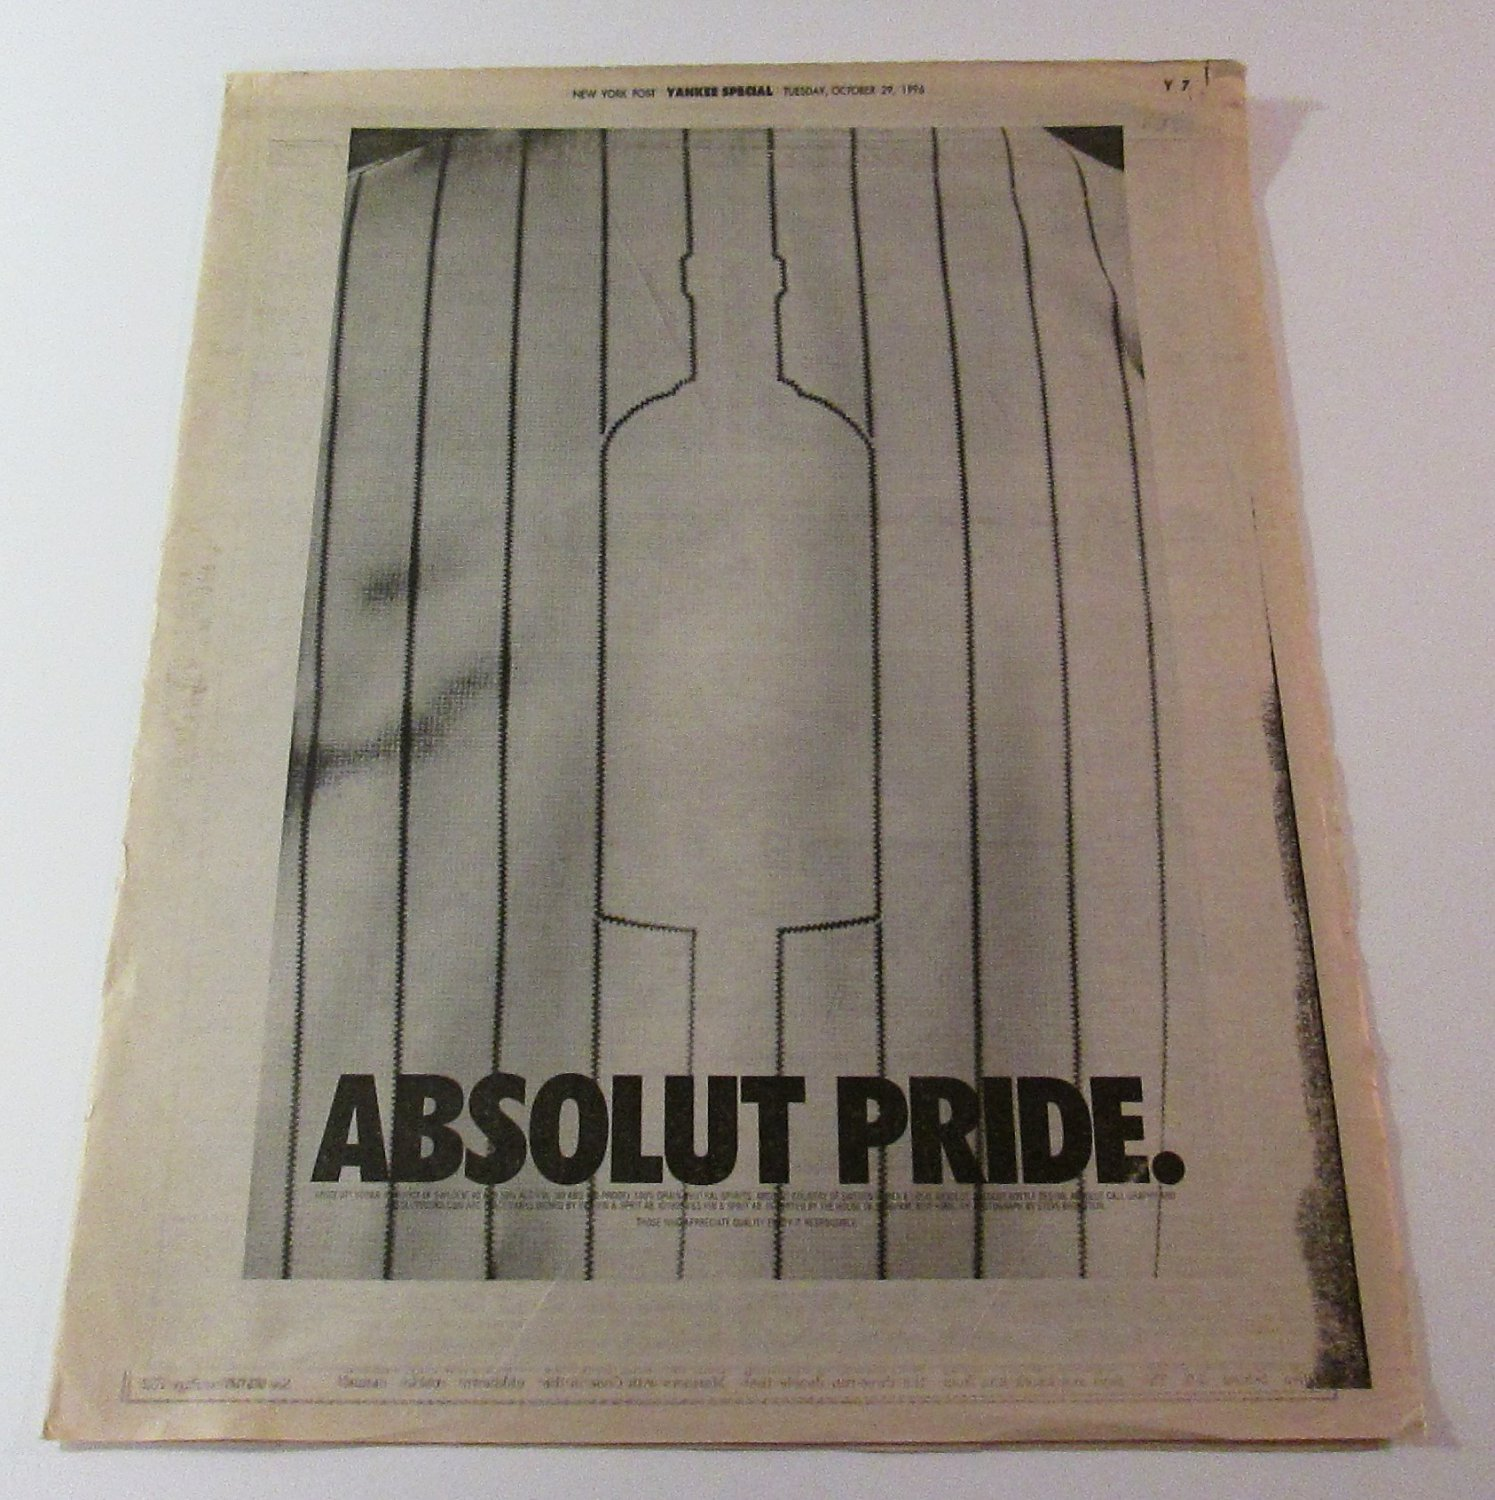 ABSOLUT PRIDE New York Post (October 29, 1996) Full-Page Newspaper Ad